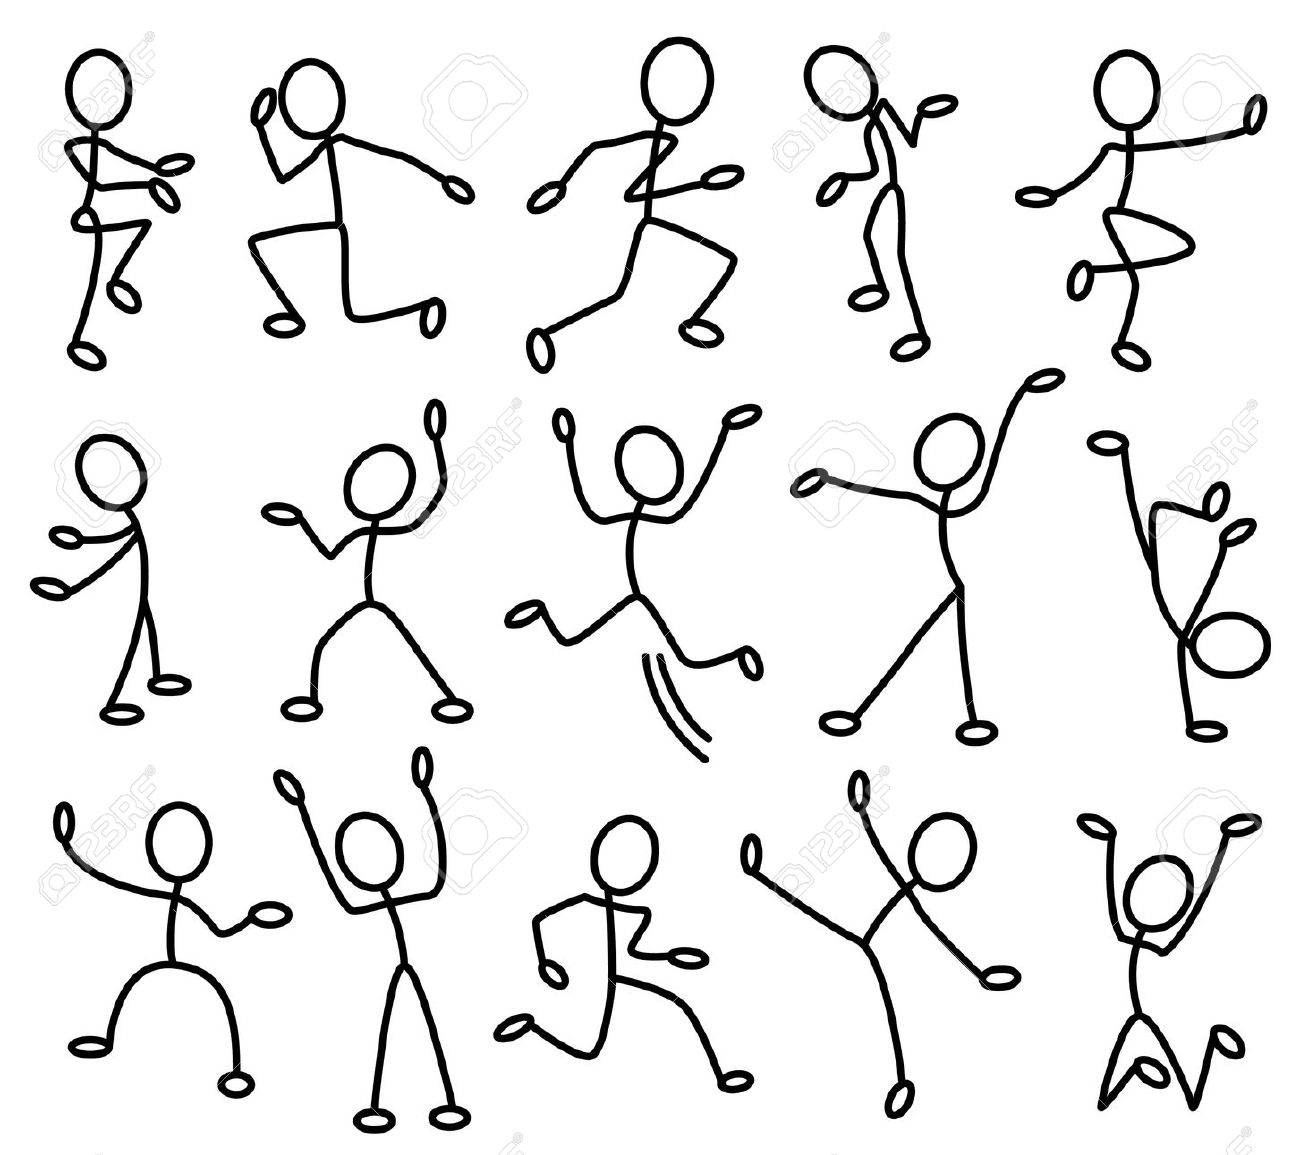 hight resolution of movement clipart